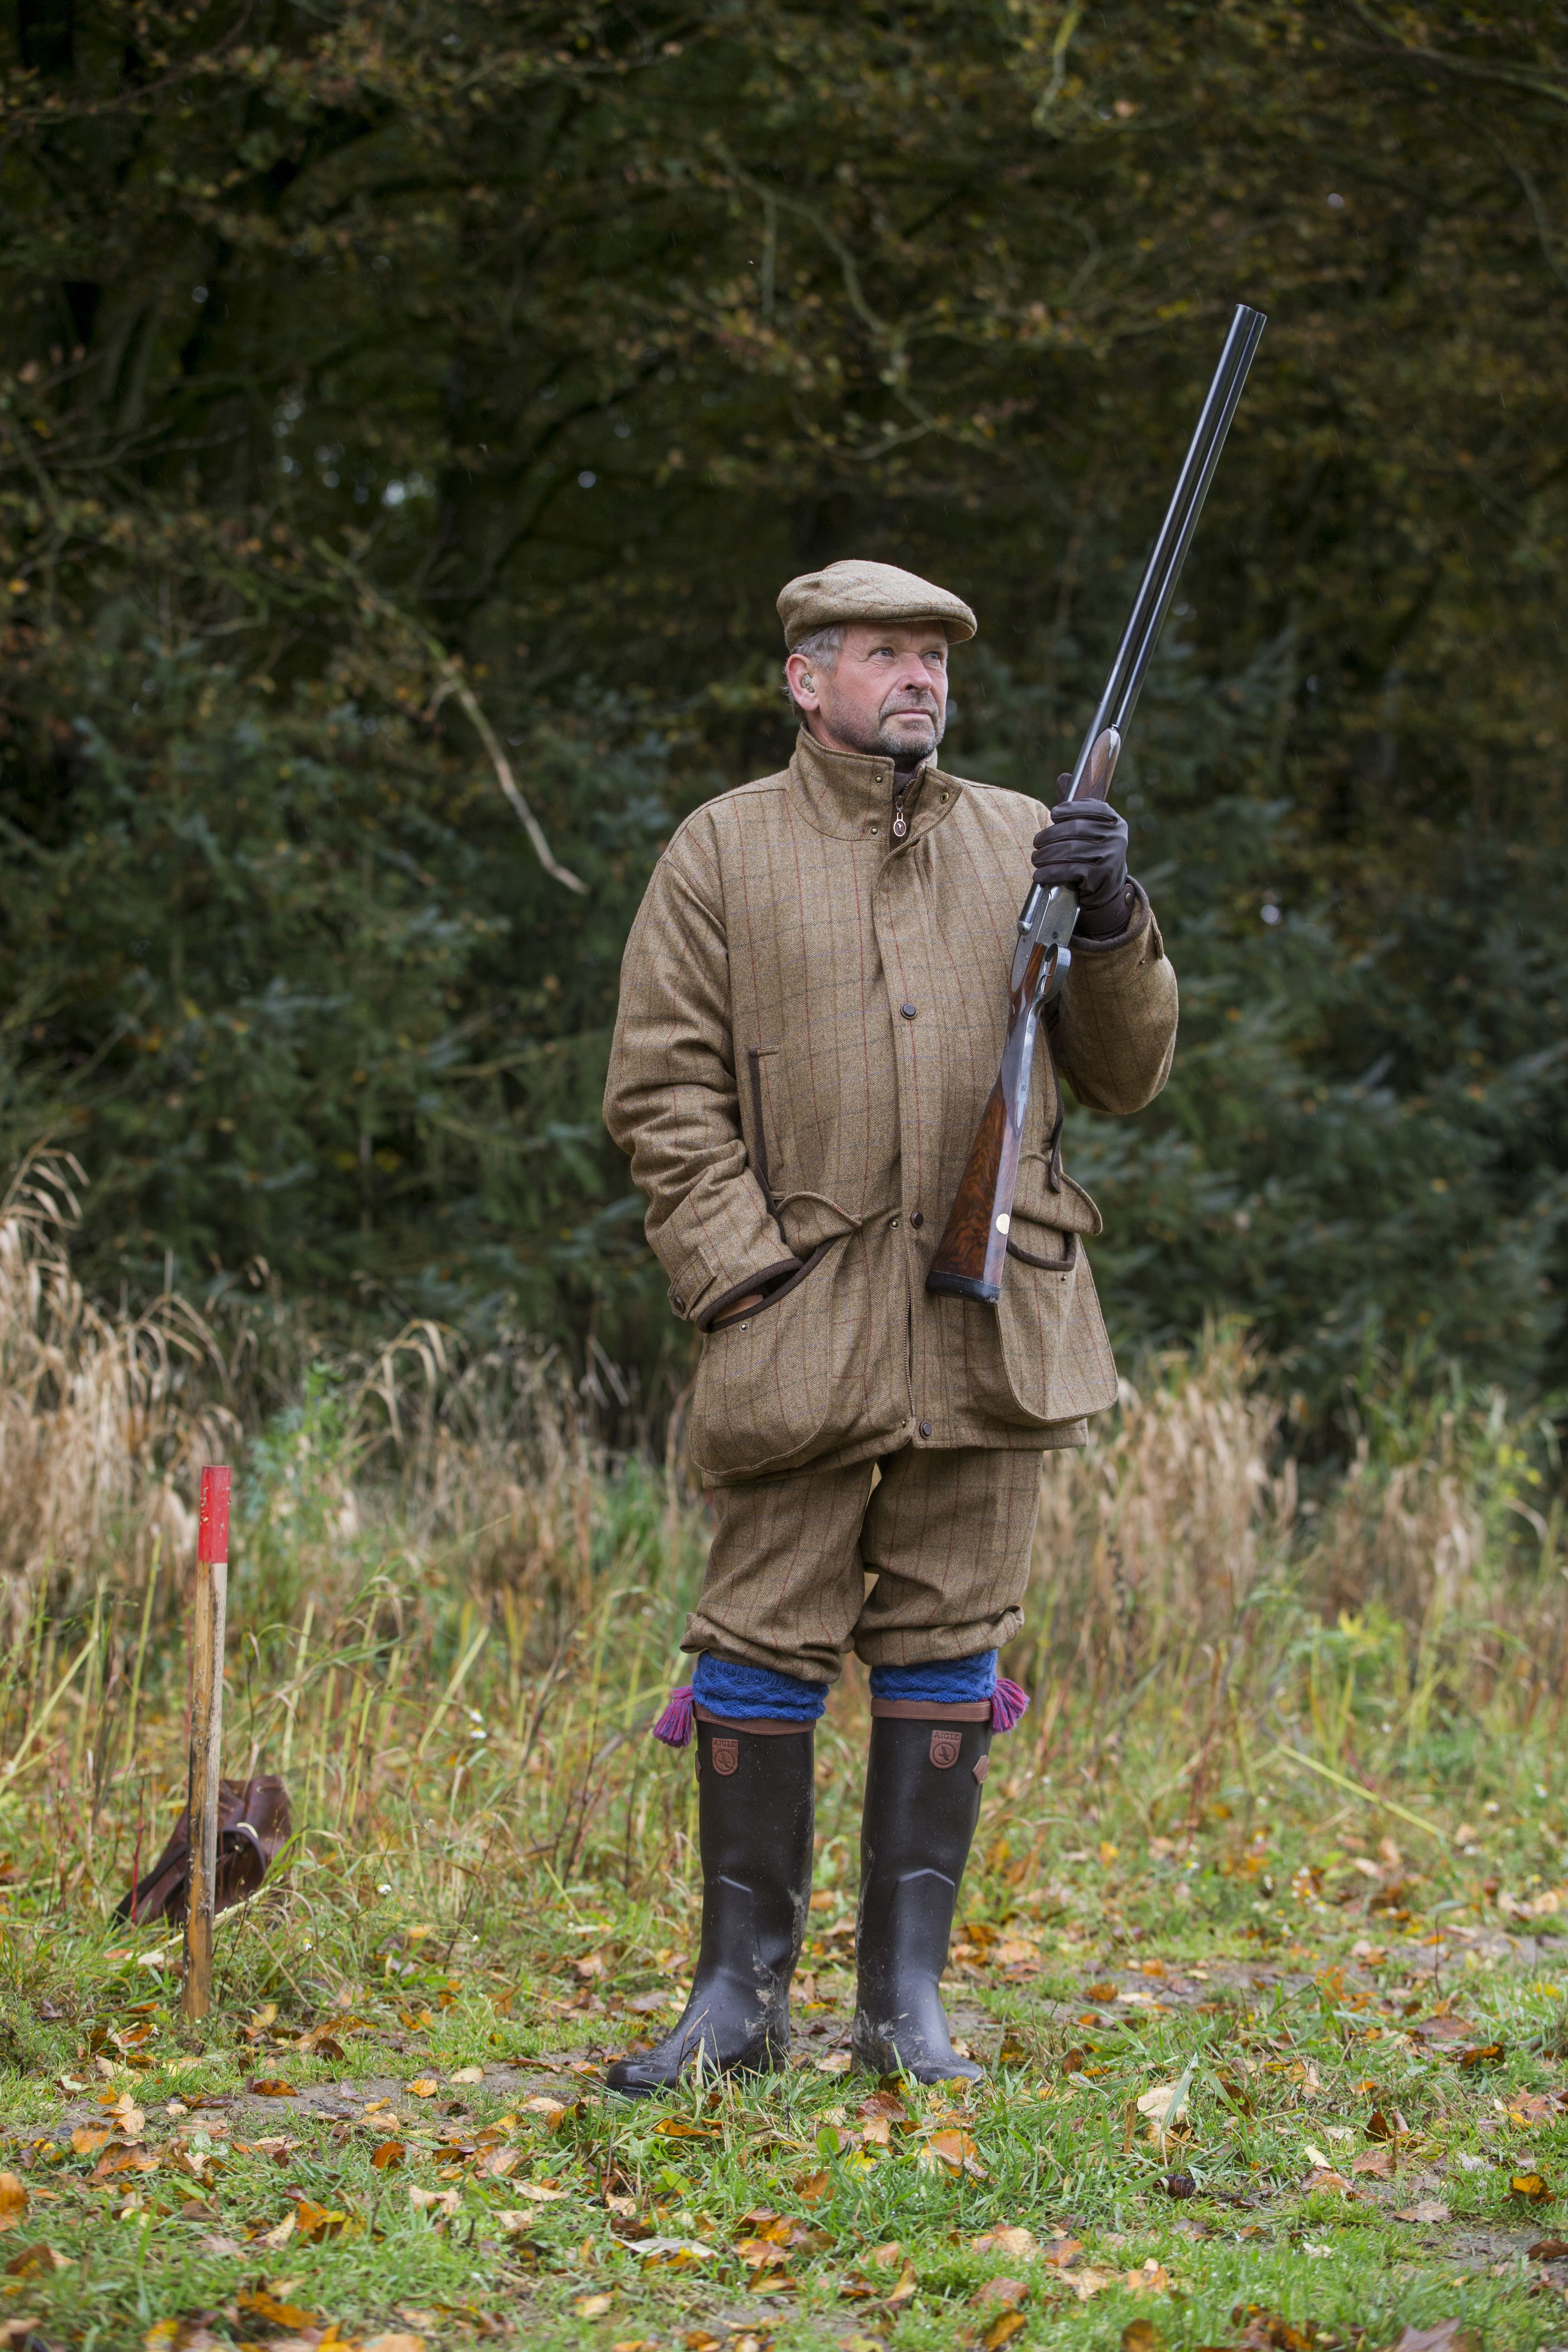 8a5cc77f09d66 Laksen Sporting Esk tweed jacket and breeks | Laksen Sporting in ...